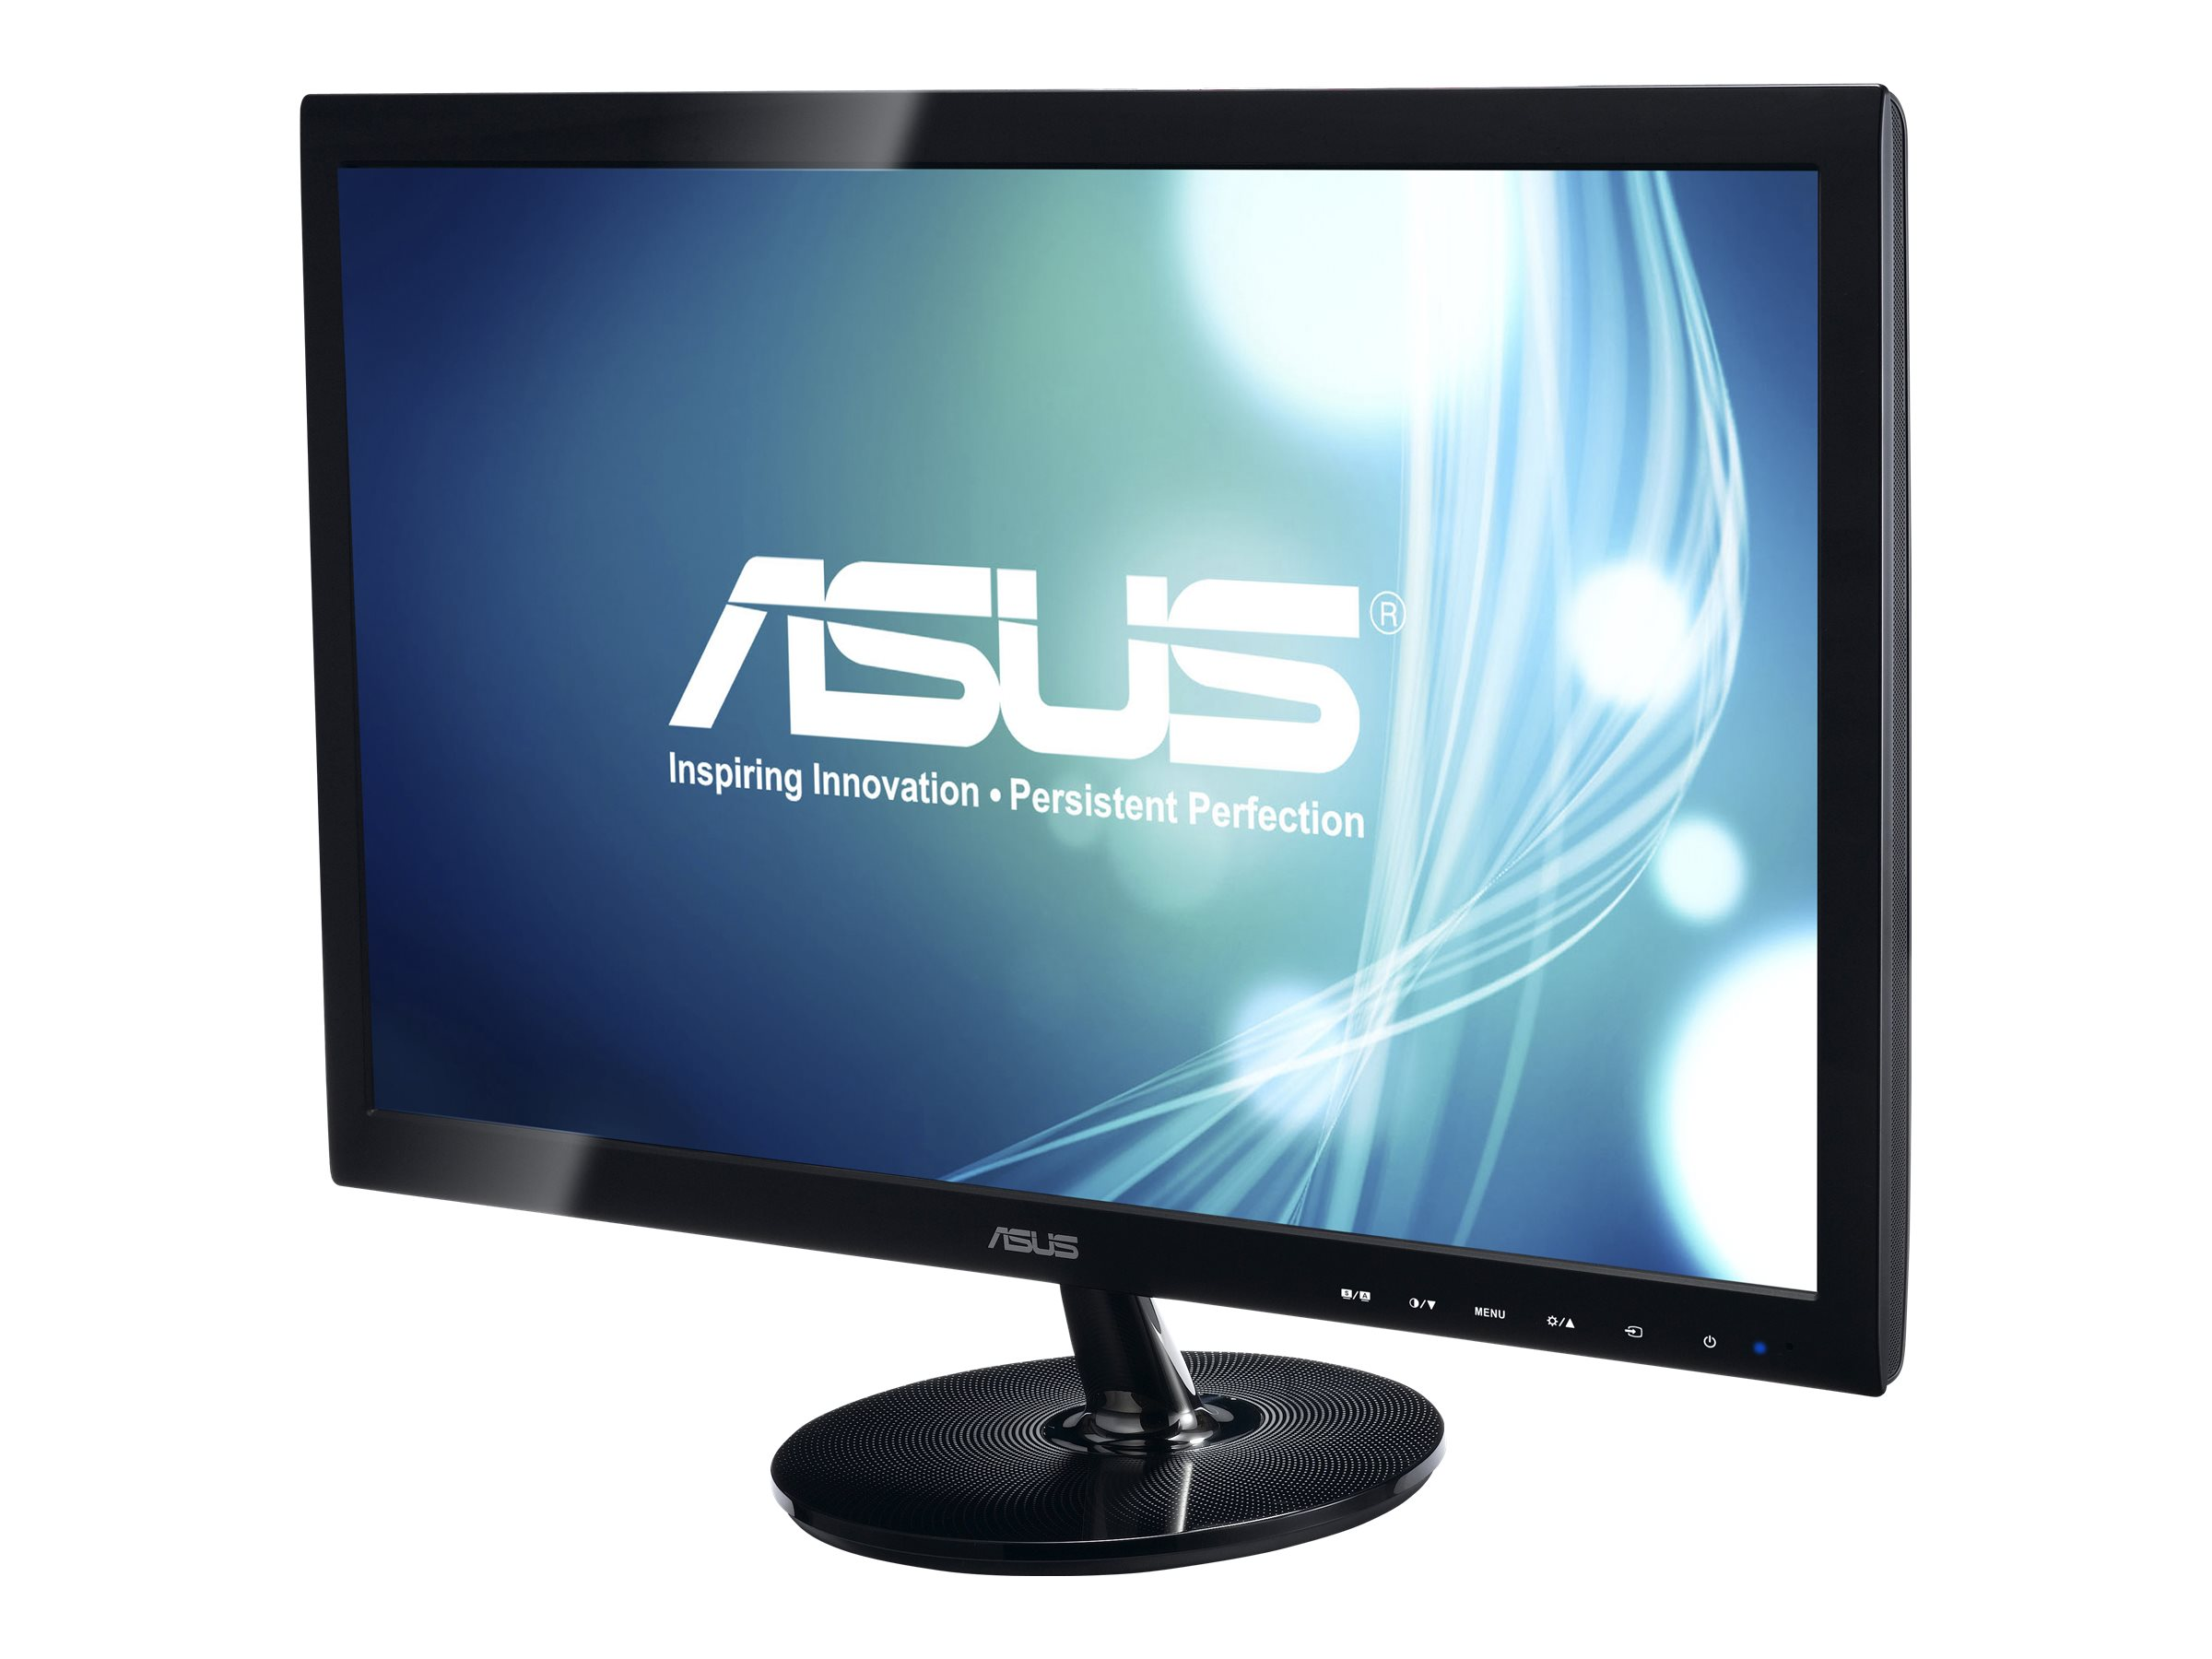 Asus 23 VS238H-P Full HD LED Monitor, Black, VS238H-P